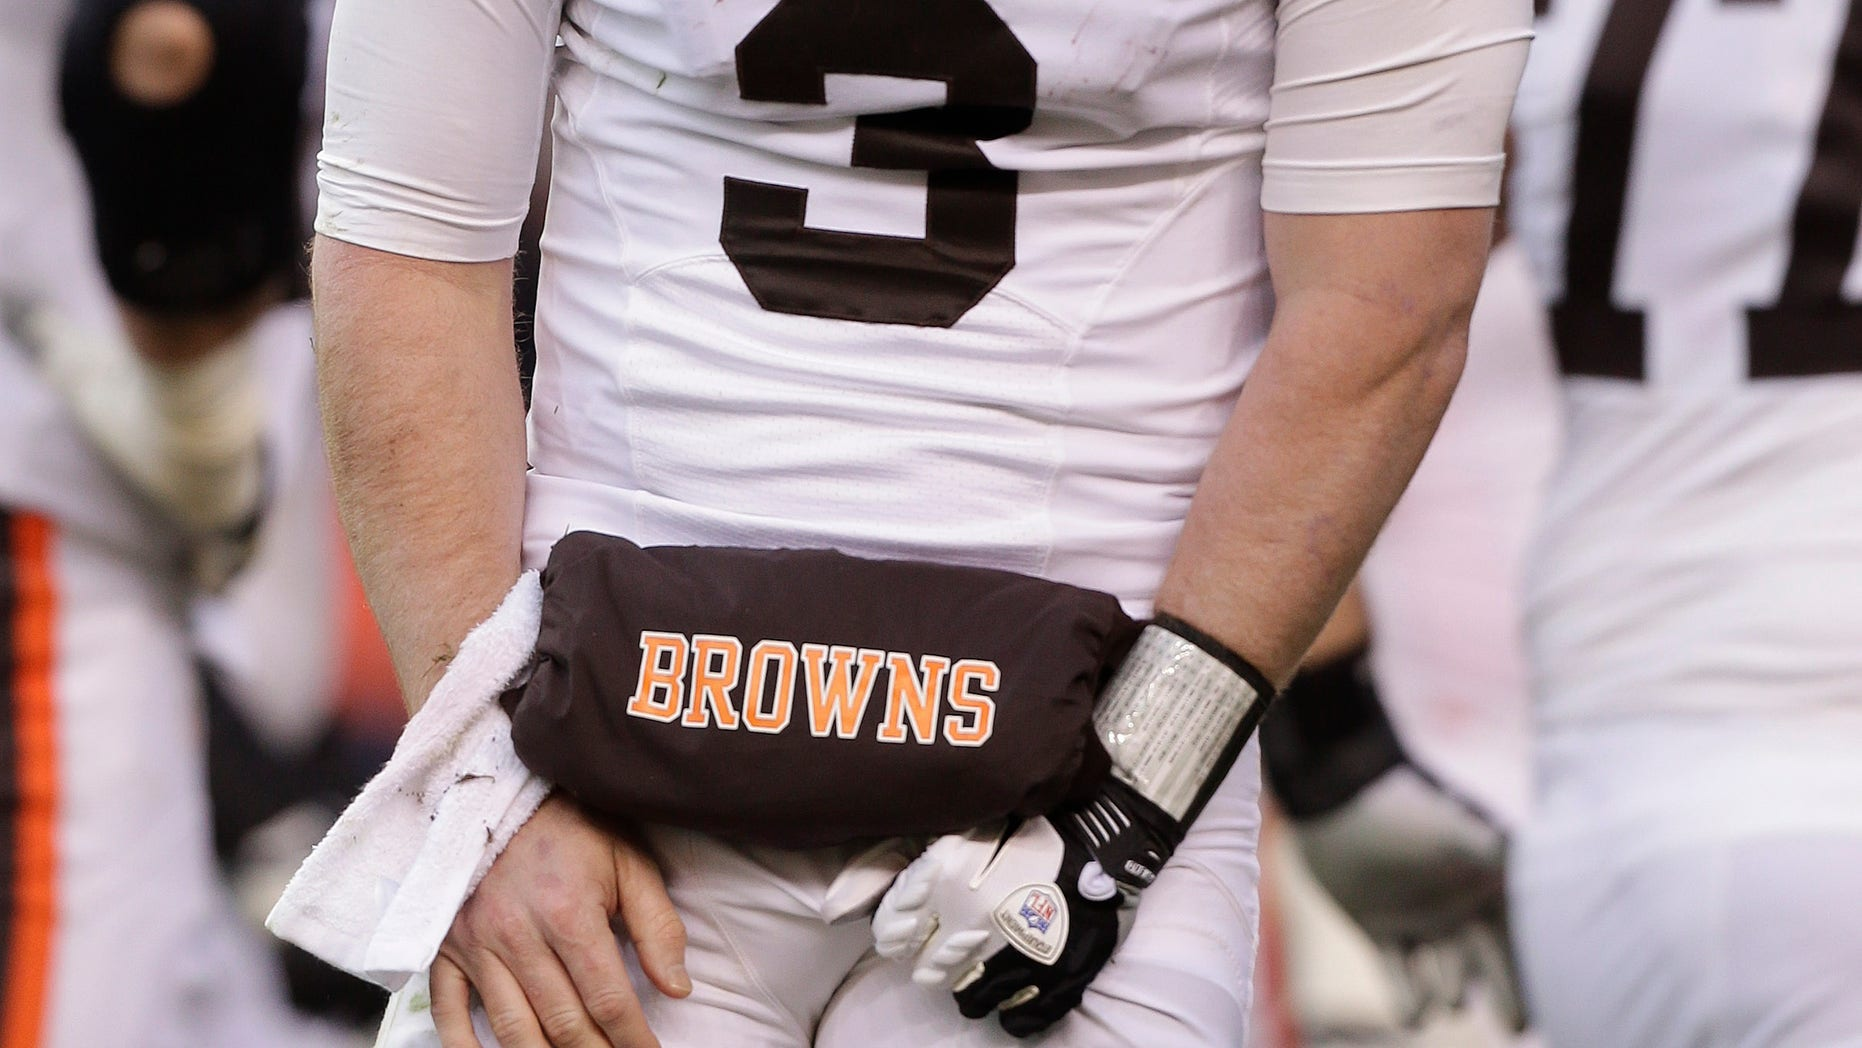 Cleveland Browns quarterback Brandon Weeden (3) reacts after being injured on a sack by the Denver Broncos in the third quarter of an NFL football game, Sunday, Dec. 23, 2012, in Denver. (AP Photo/Joe Mahoney)